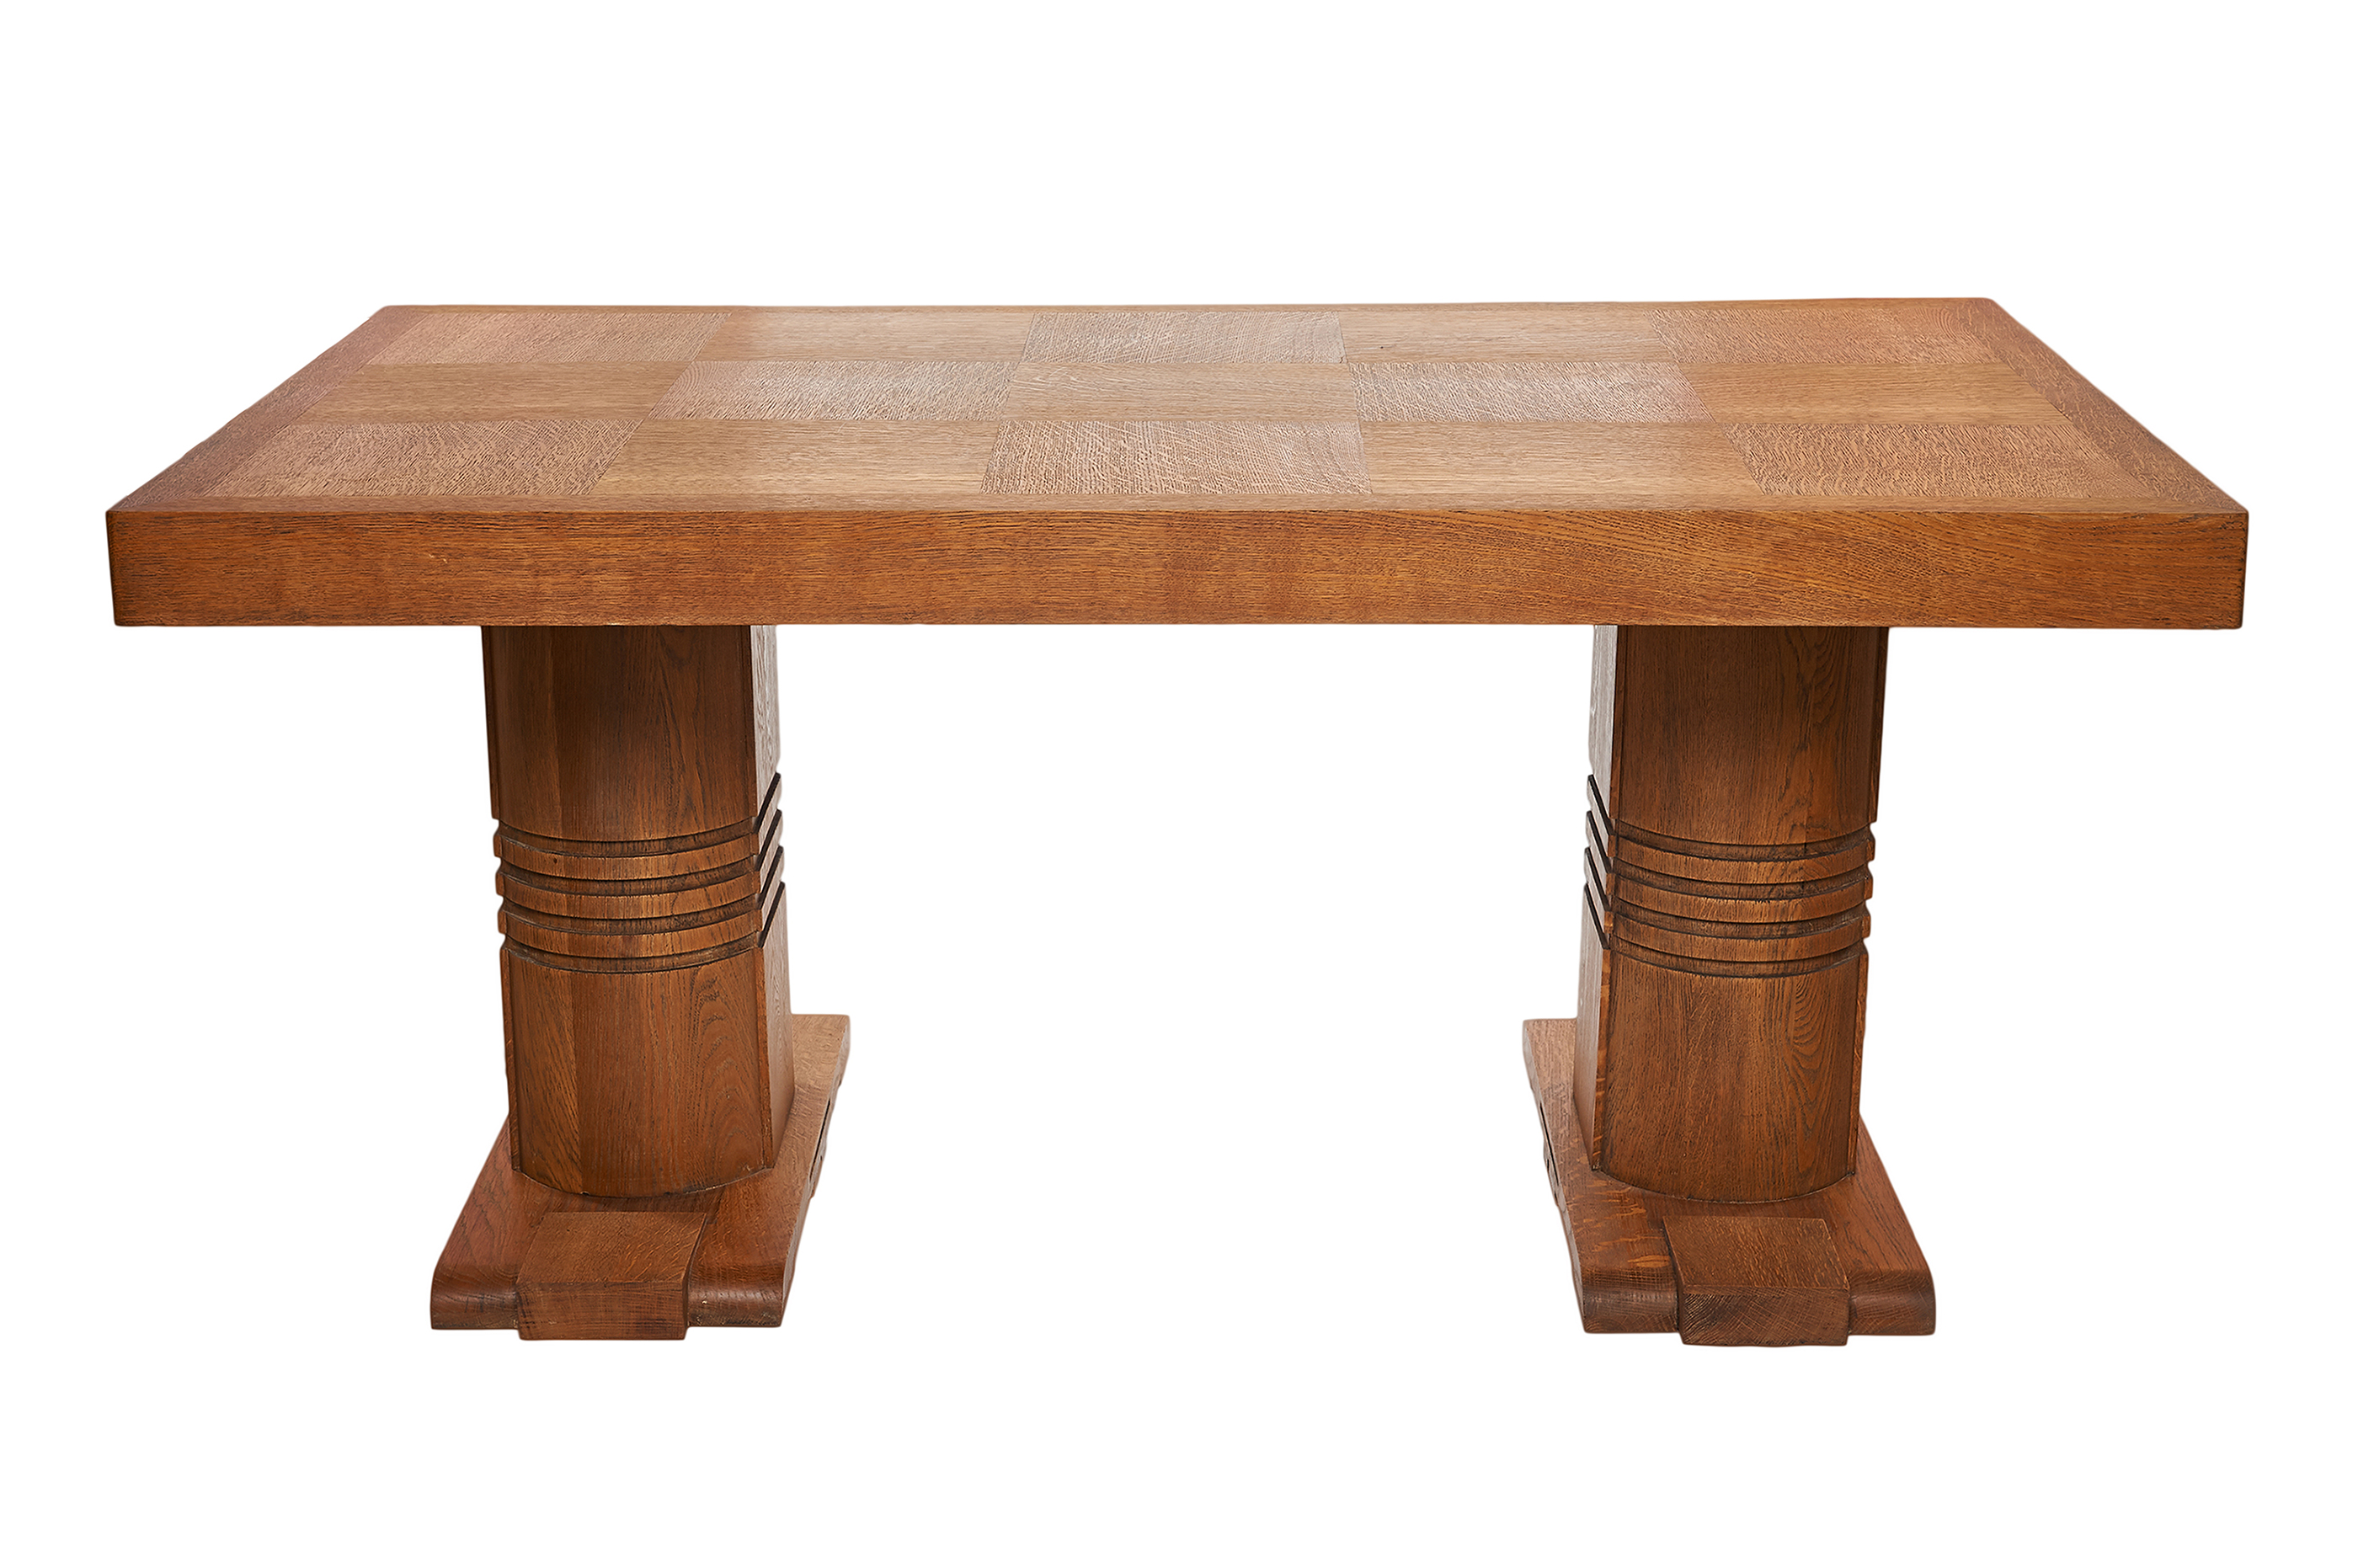 t brown Image 3_Dudouyt Dining Table